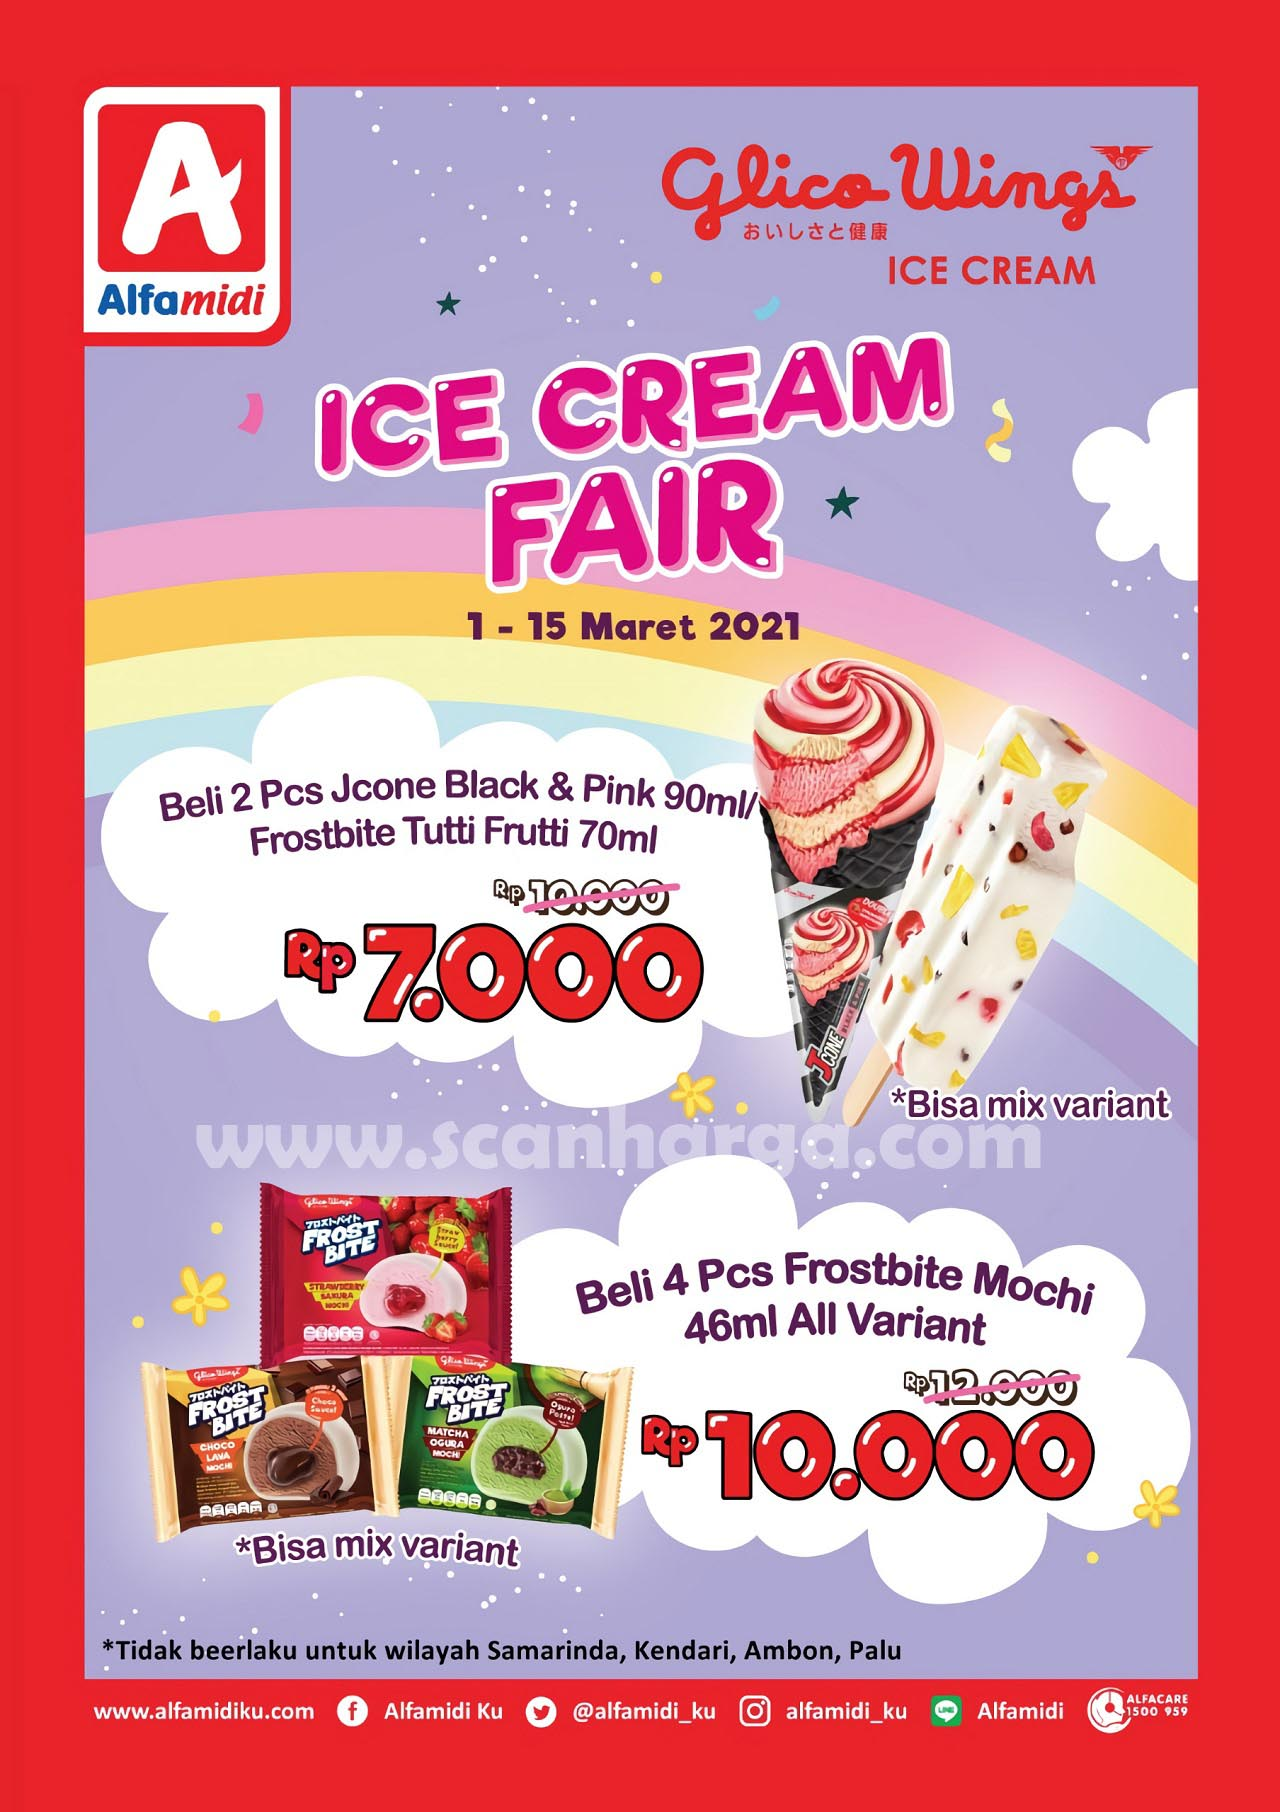 ALFAMIDI GLICO WINGS FAIR! Promo Beli 2 pcs Jcone Black & Pink 90ml hanya Rp 7.000